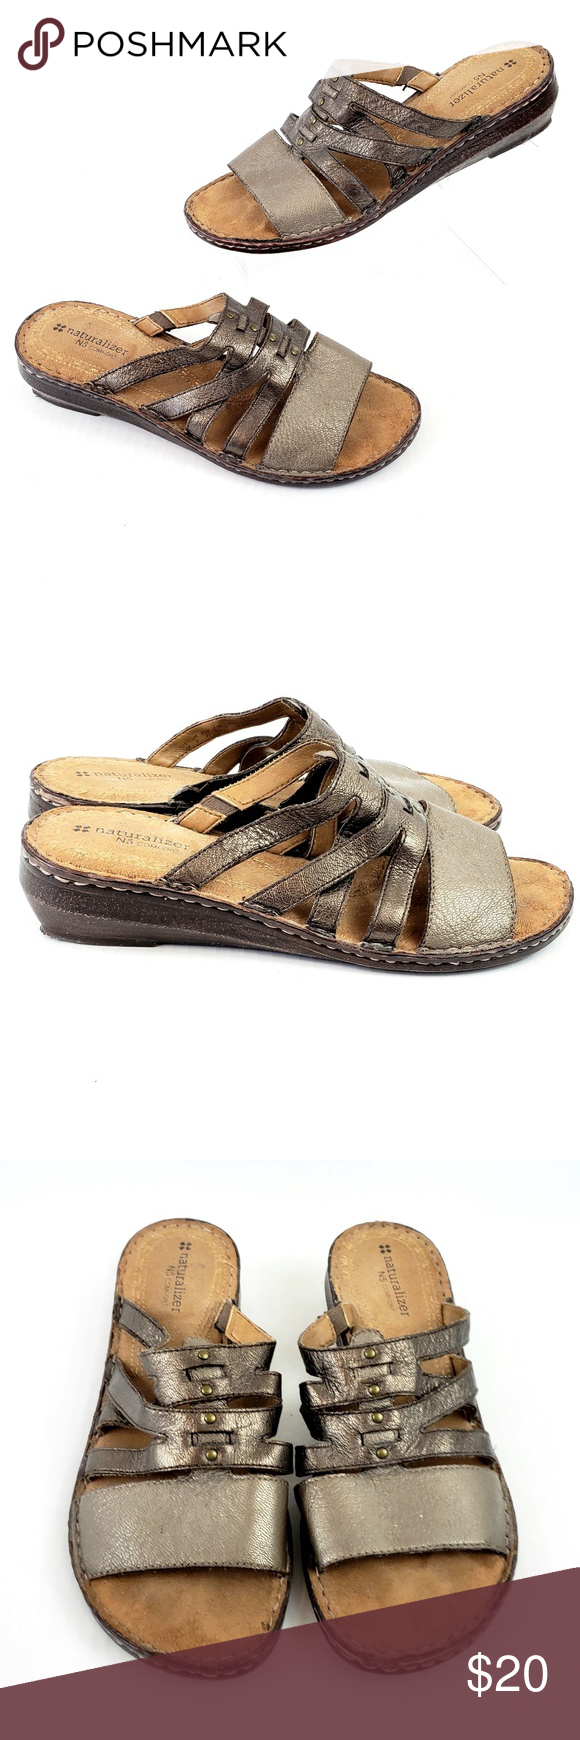 Naturalizer comfort wedge sandal Bronze-gold 10 Naturalizer comfort Low wedge slide strappy sandal Women's size 10 Gently used condition (I have toooooo many shoes-clearing out my closet) Soft comfortable foot bed.  Bronze-Gold color. selling from a smoke-free home *Remember to check out my closet and Bundle to $ave :) Naturalizer Shoes Wedges #lowwedgesandals Naturalizer comfort wedge sandal Bronze-gold 10 Naturalizer comfort Low wedge slide strappy sandal Women's size 10 Gently used condition #lowwedgesandals